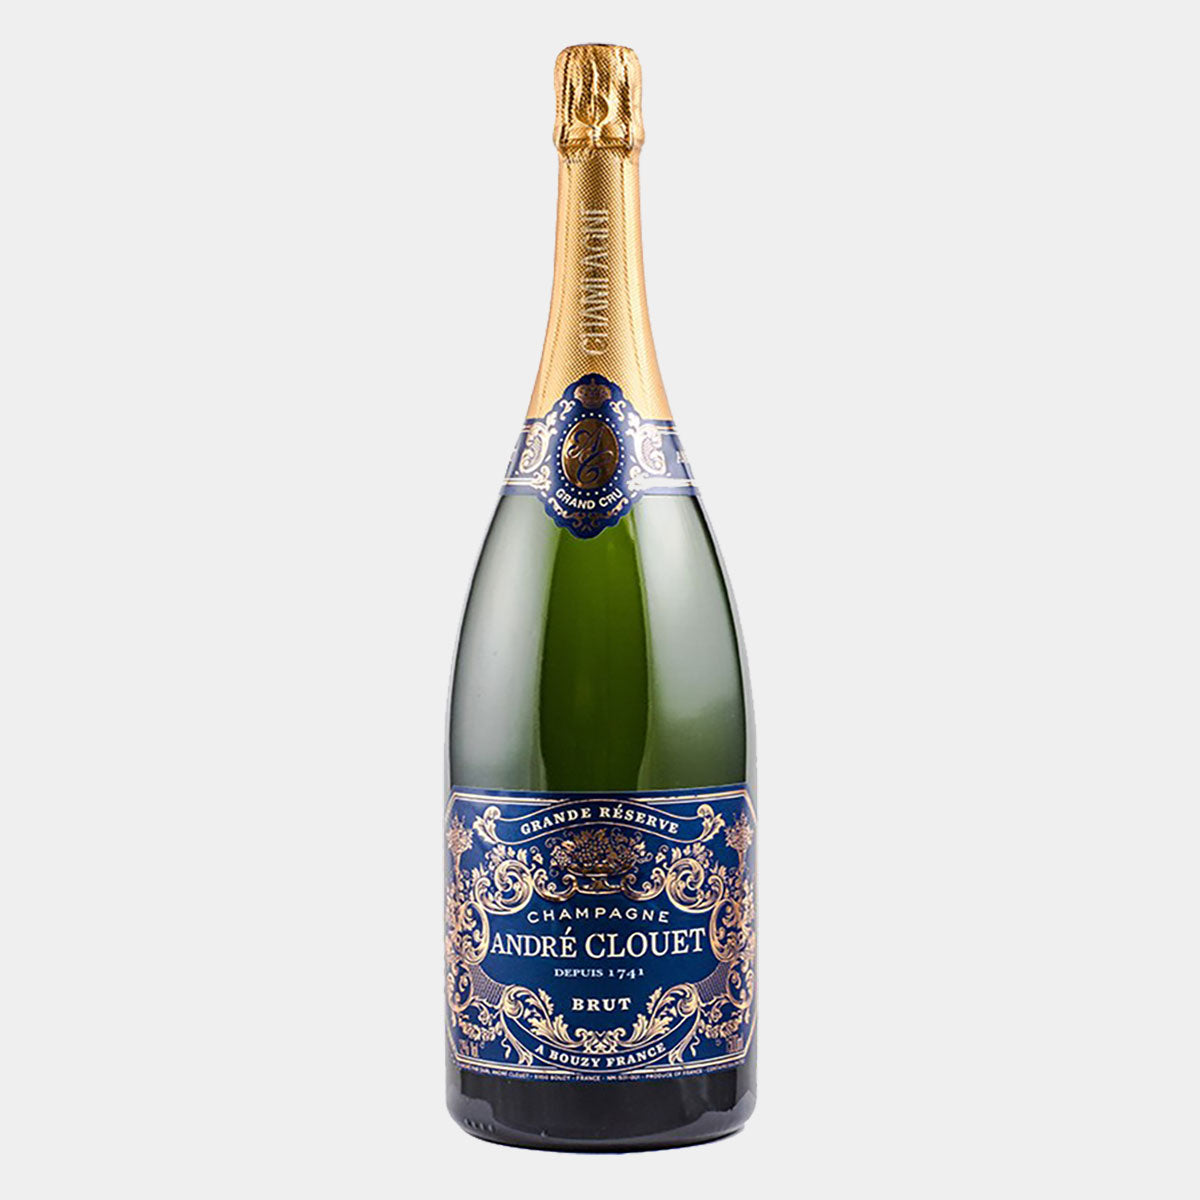 Andre Clouet Grand Cru Champagne 150 CL - Wines and Copas Barcelona